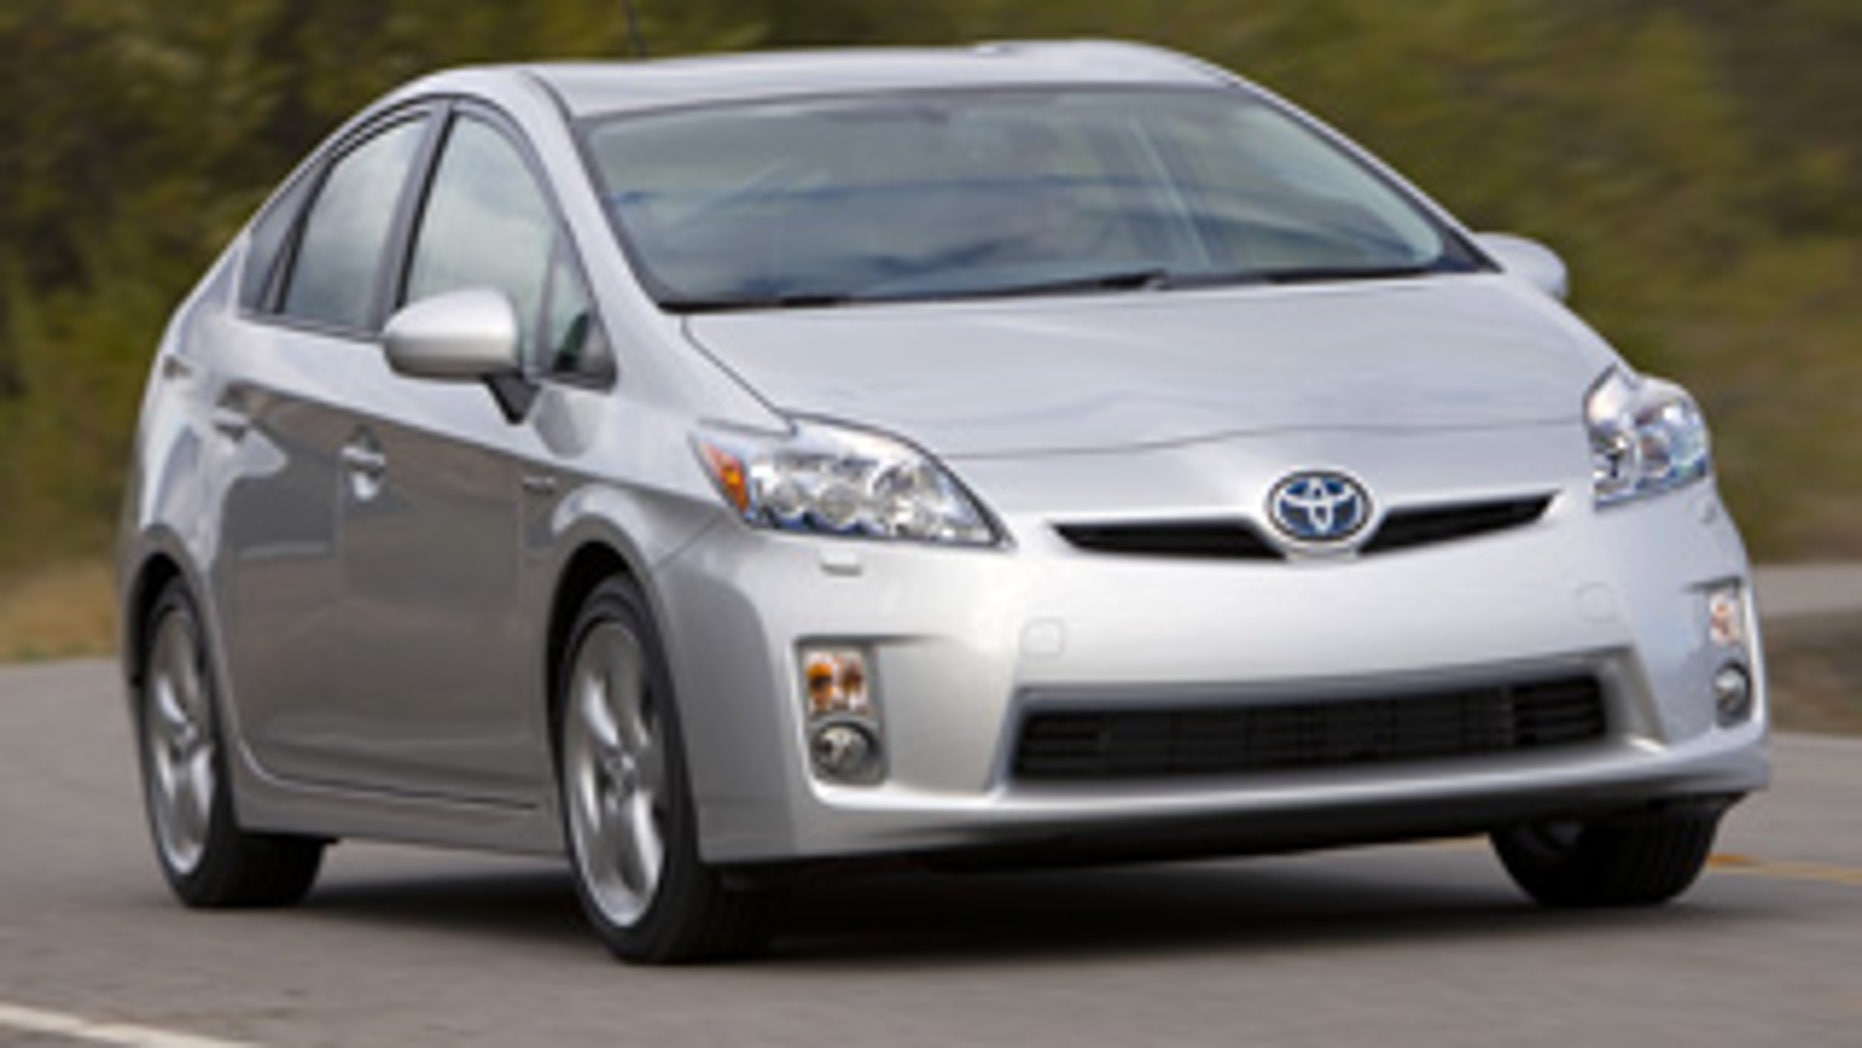 Transportation Department Opens Probe Into Brake Problems In 2010 Toyota Prius Models